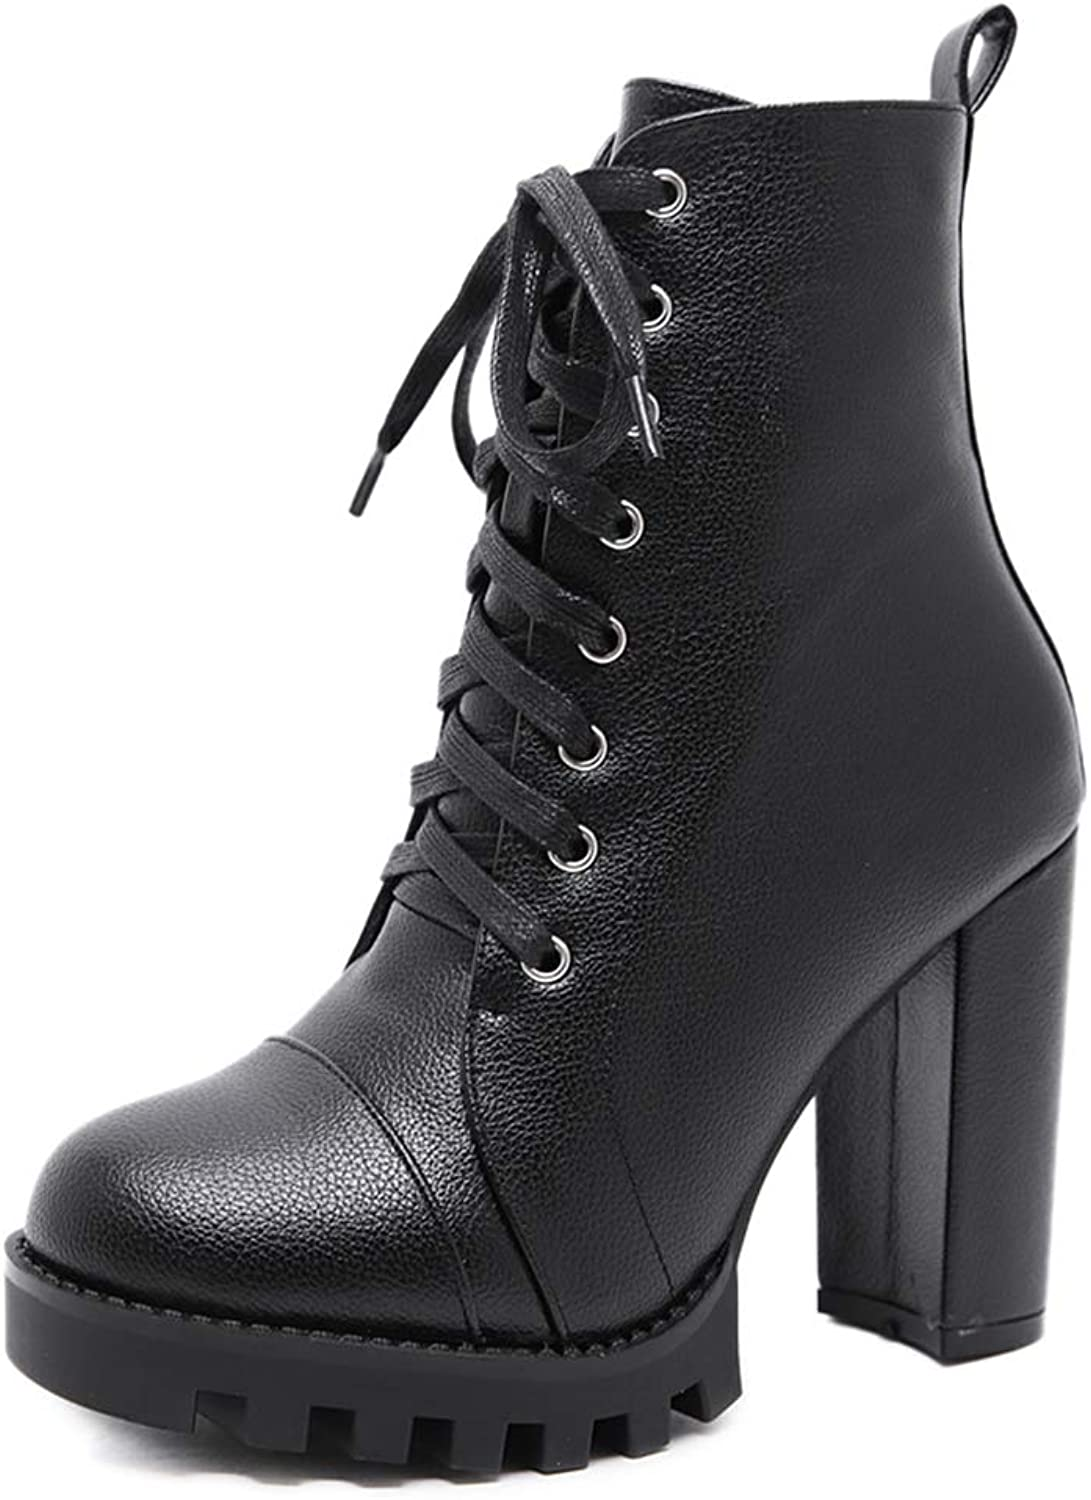 Btrada Women Ankle Boots Fashion Round Toe Lace Up Cross Tied High Heels Autumn Winter Platform Booties Black